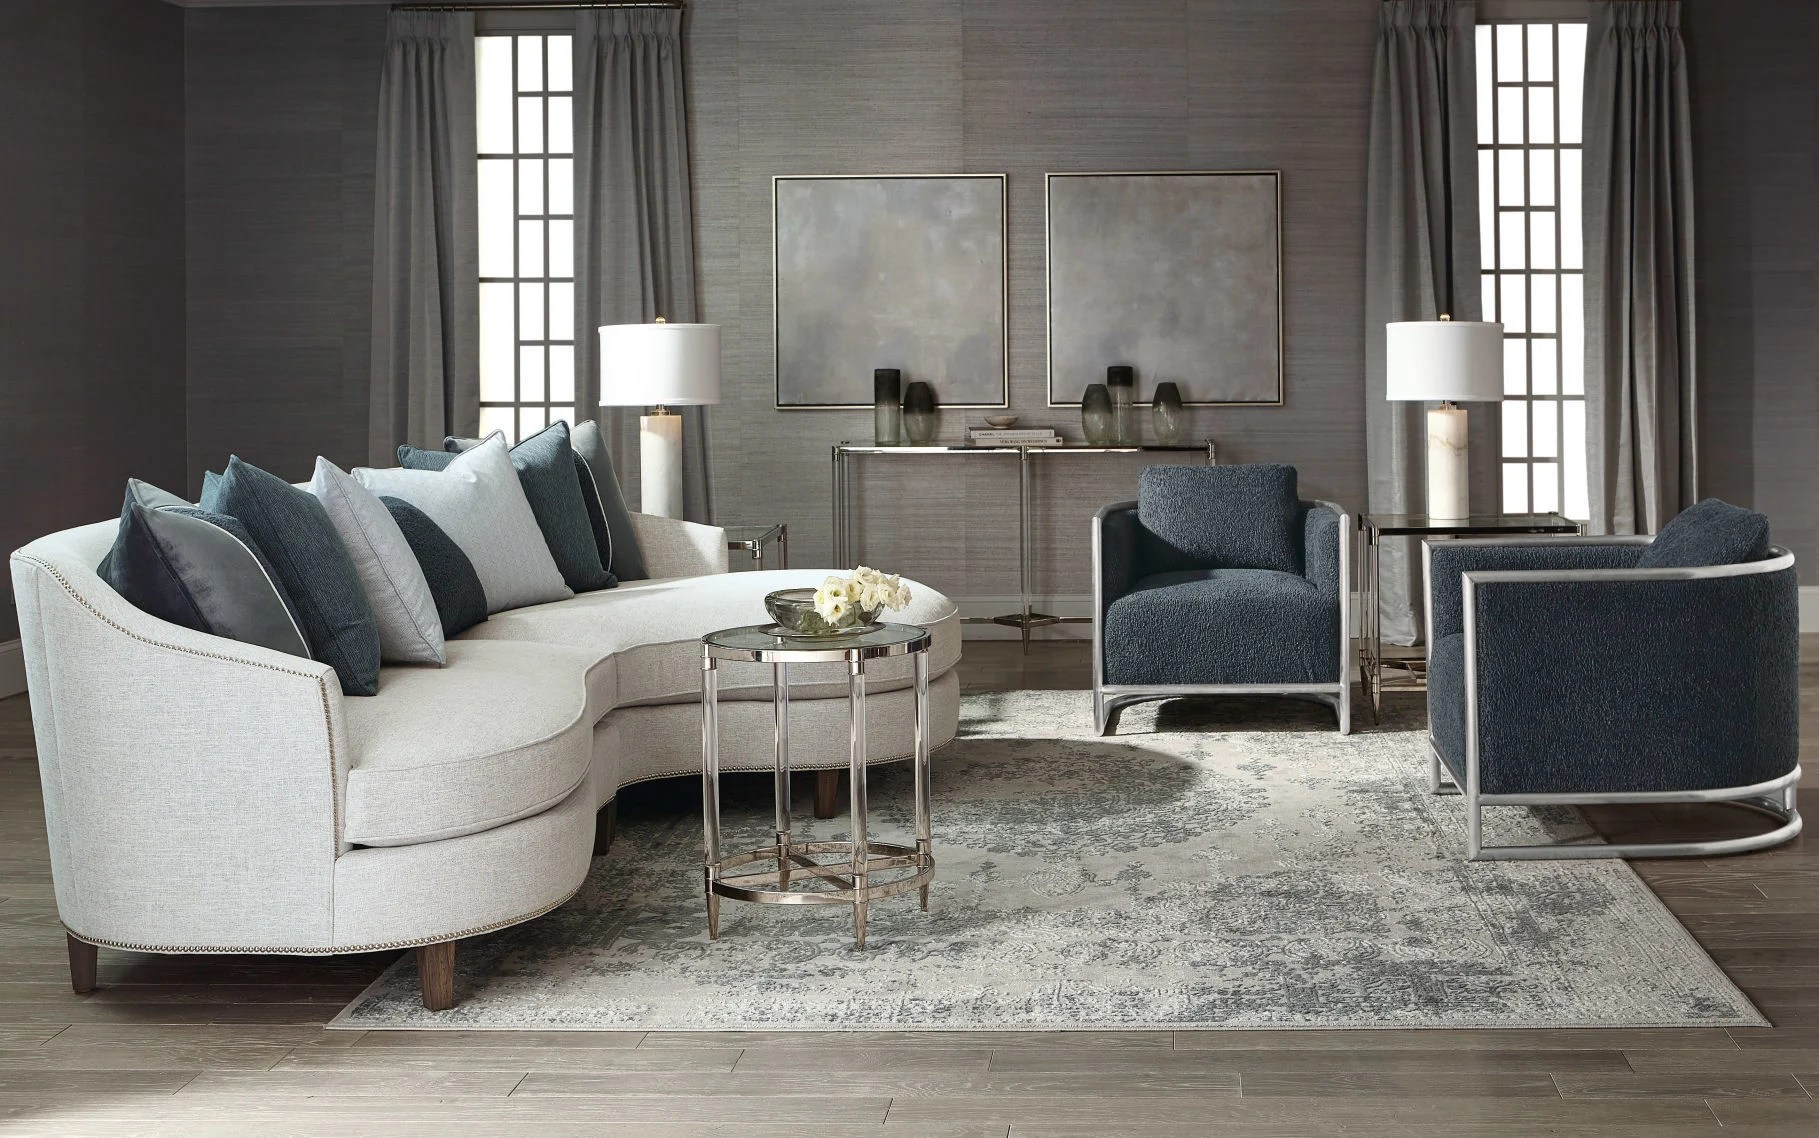 Home Trends For 2020 Furniture Flow For Open Floor Plans Life Style Magazine Thesouthern Com